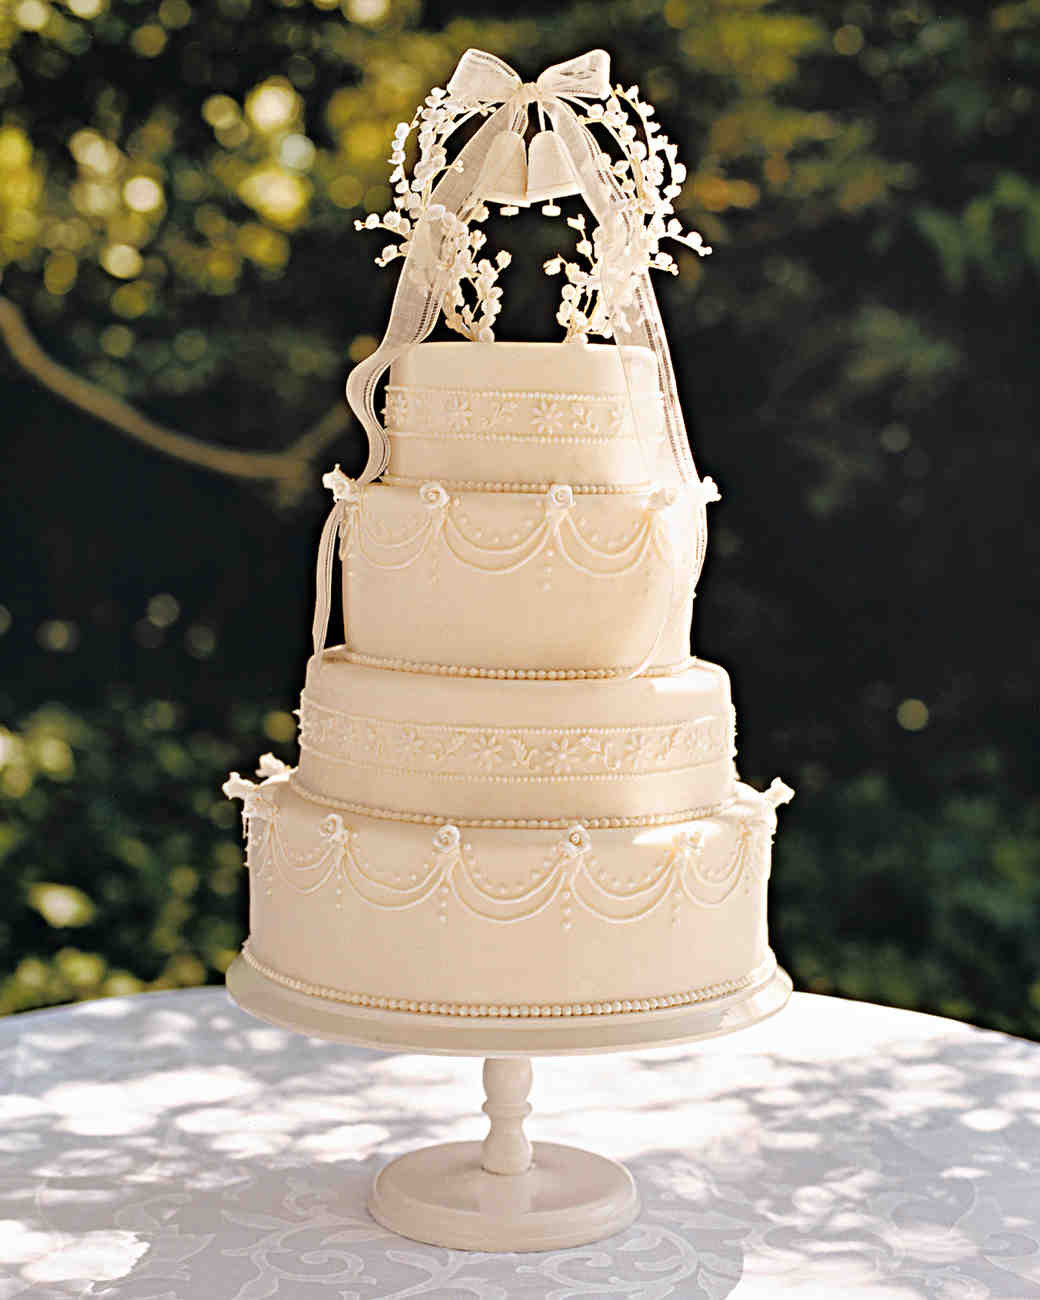 Toppers For Wedding Cakes  36 of the Best Wedding Cake Toppers